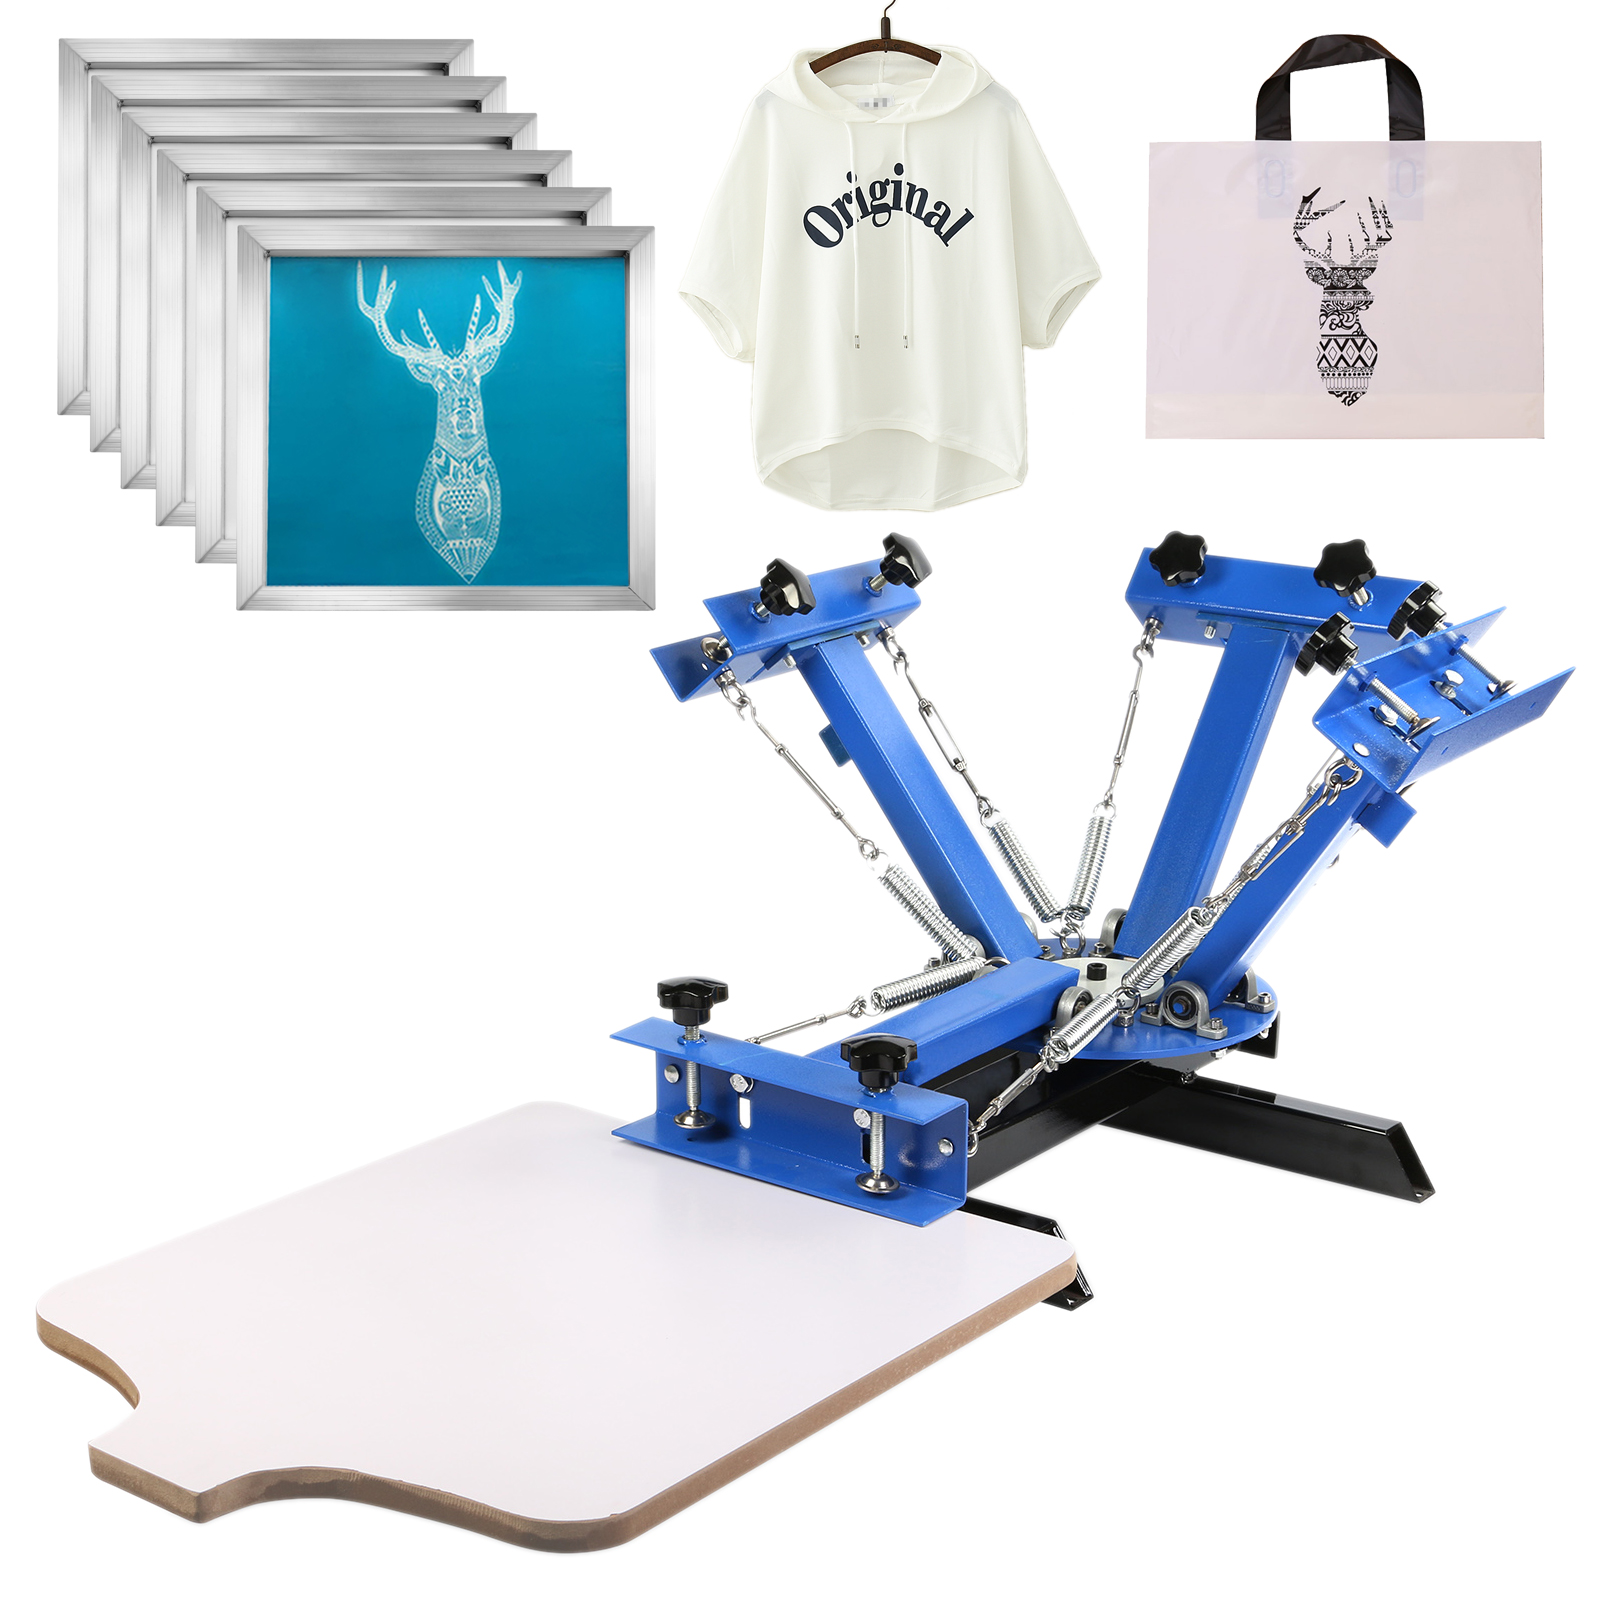 VEVOR Screen Printing Press 4 Color 4 Station and 6 Pieces 18x20 Inch Aluminum Silk Screen Printing Frames with White 160 Count Mesh